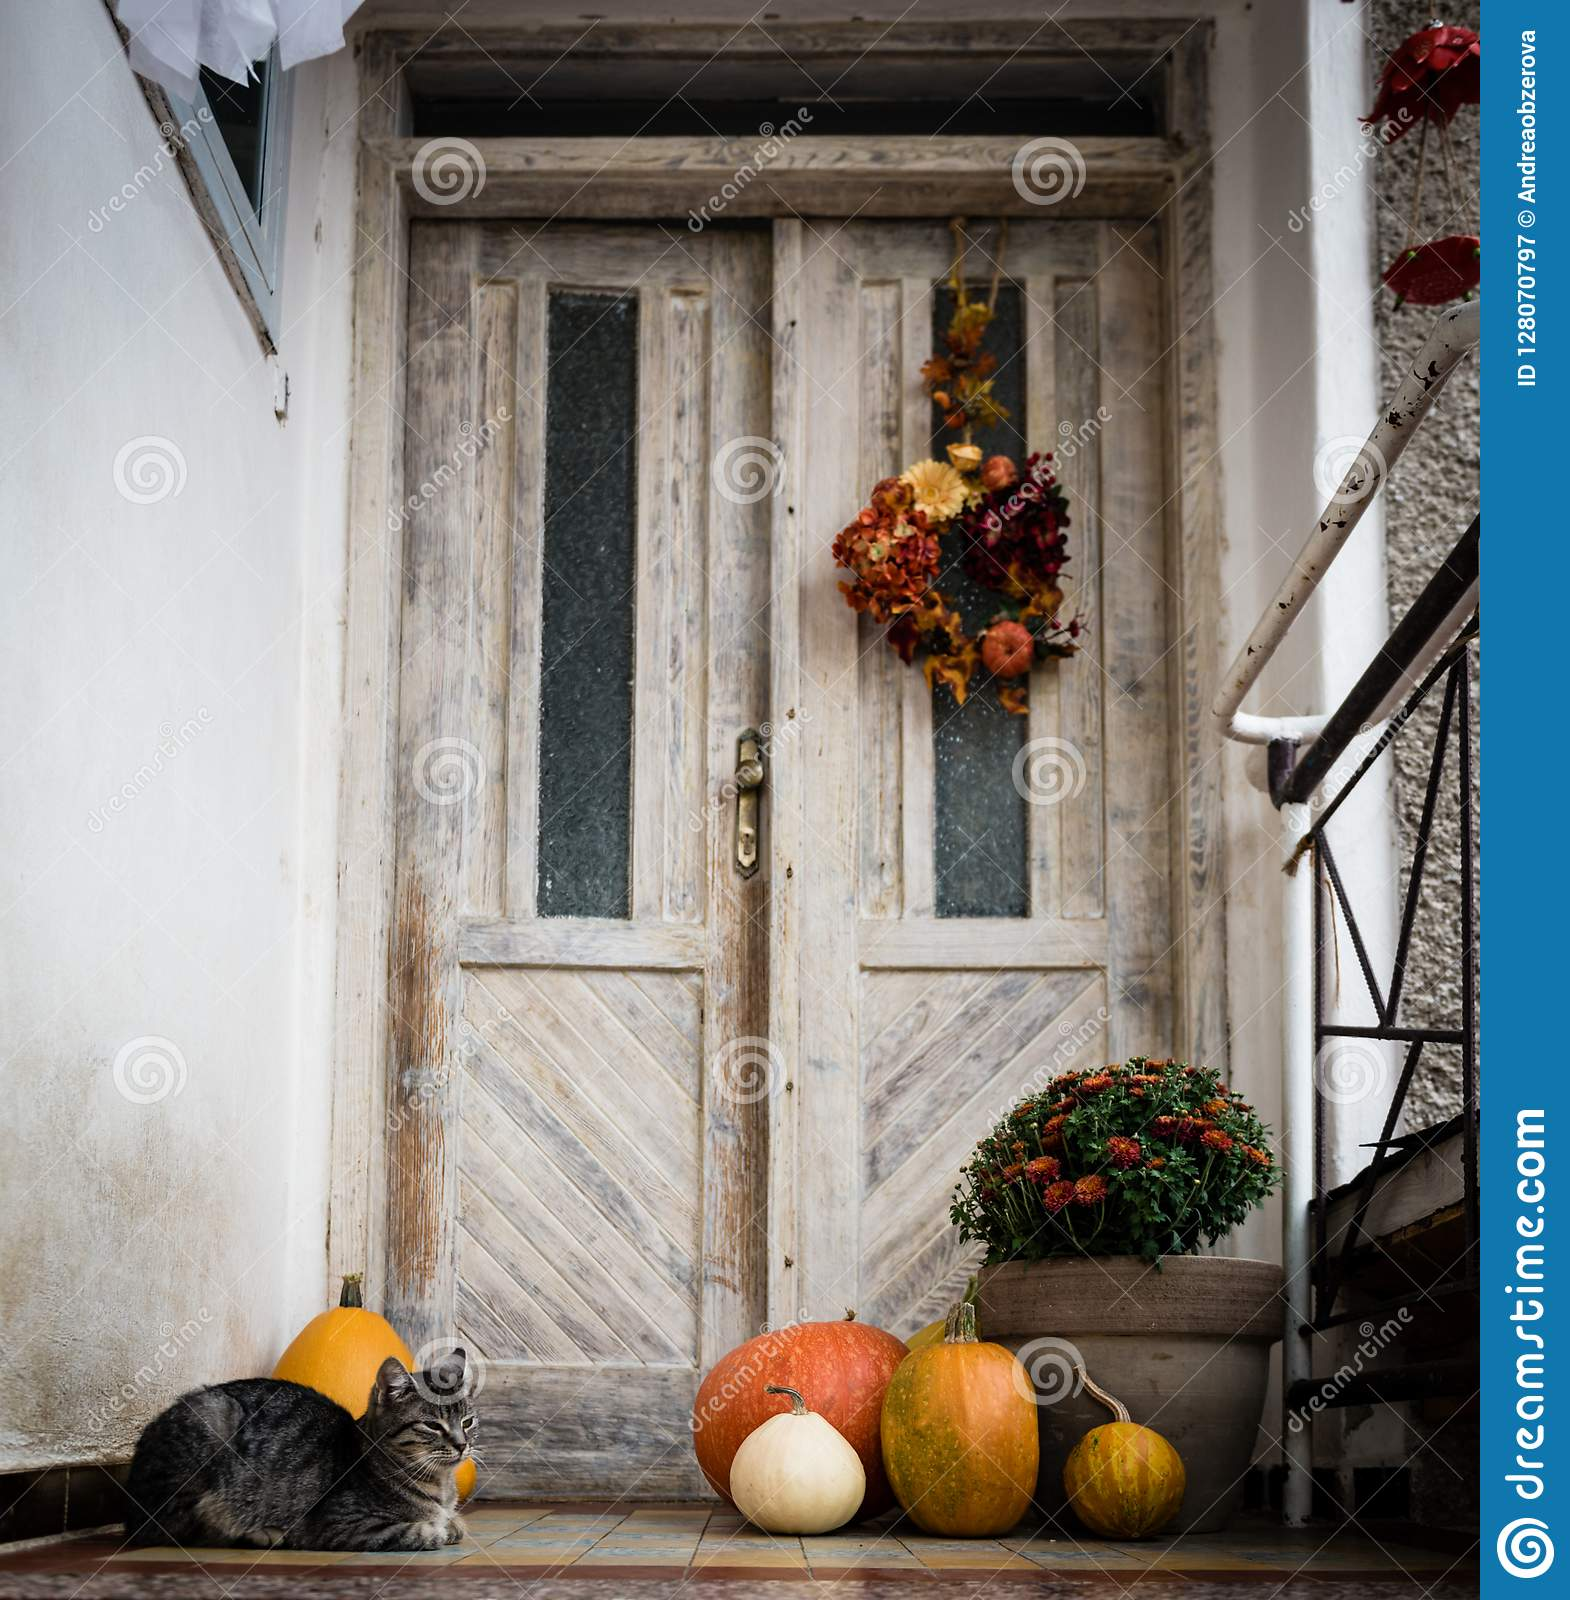 1 613 Halloween Porch s Free & Royalty Free Stock